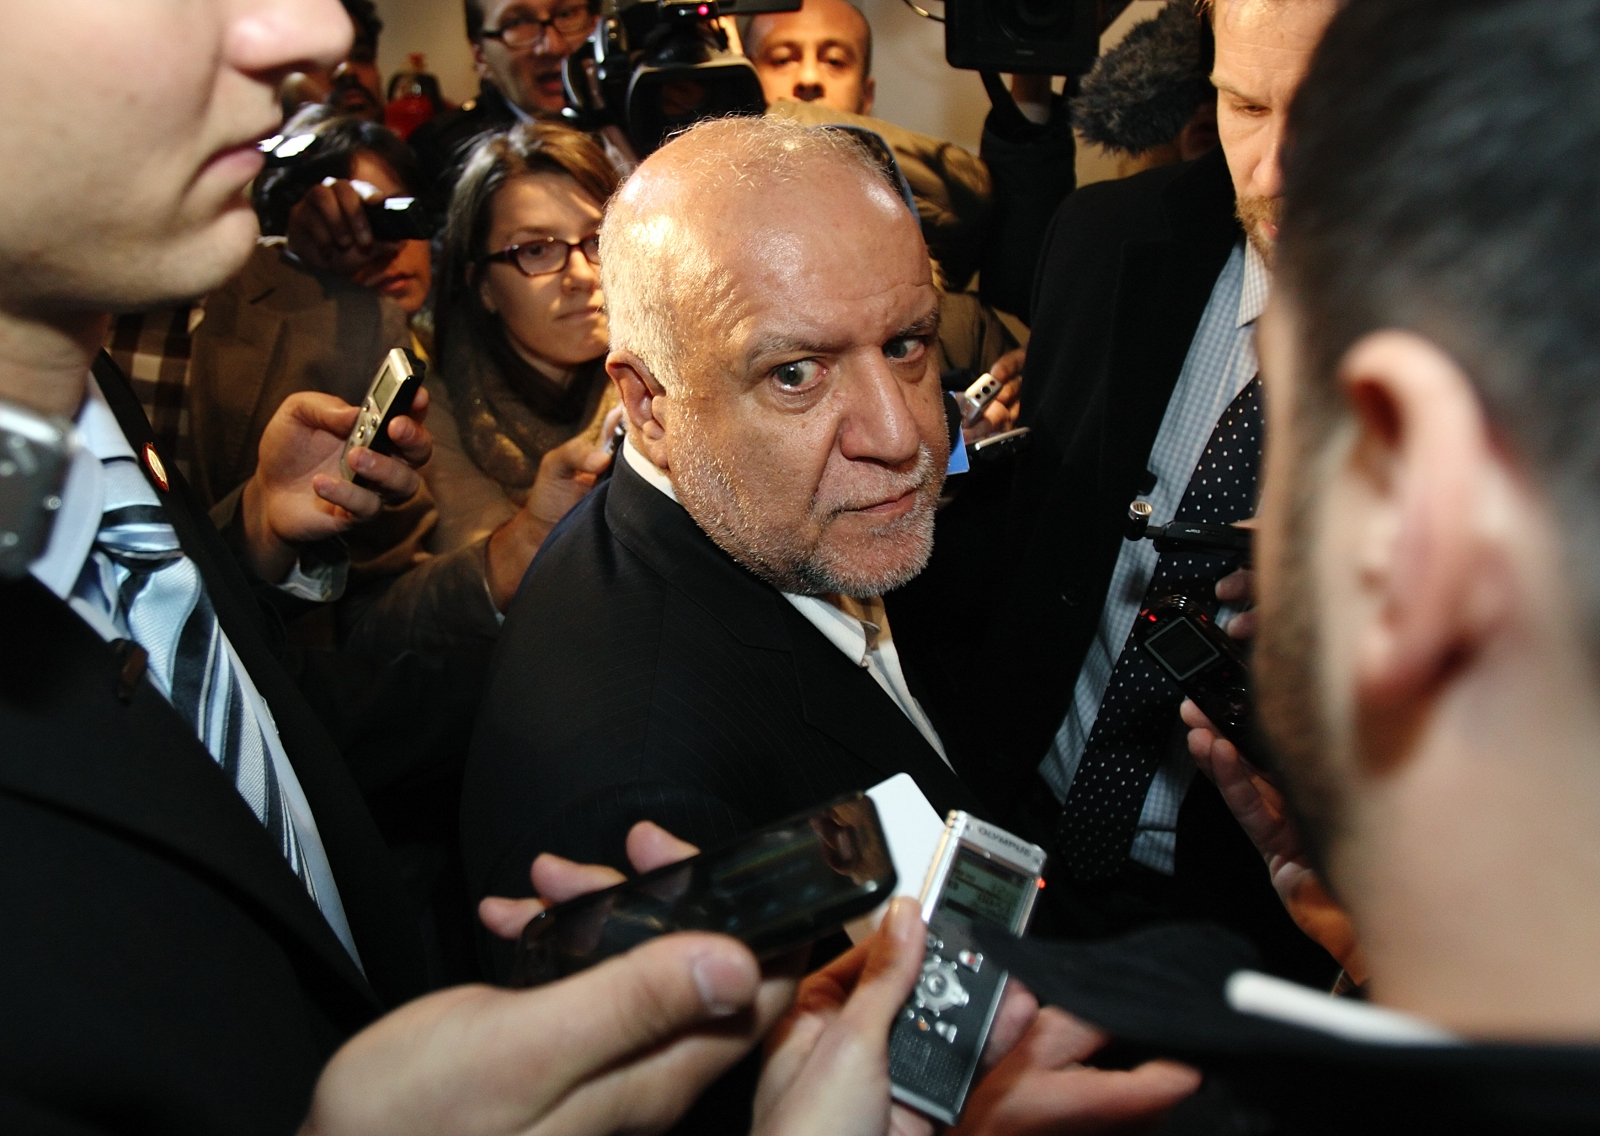 Iranian Oil Minister Bijan Zanganeh is surrounded by journalists and security staff as he arrives at his hotel ahead of an OPEC meeting in Vienna December 3, 2013.